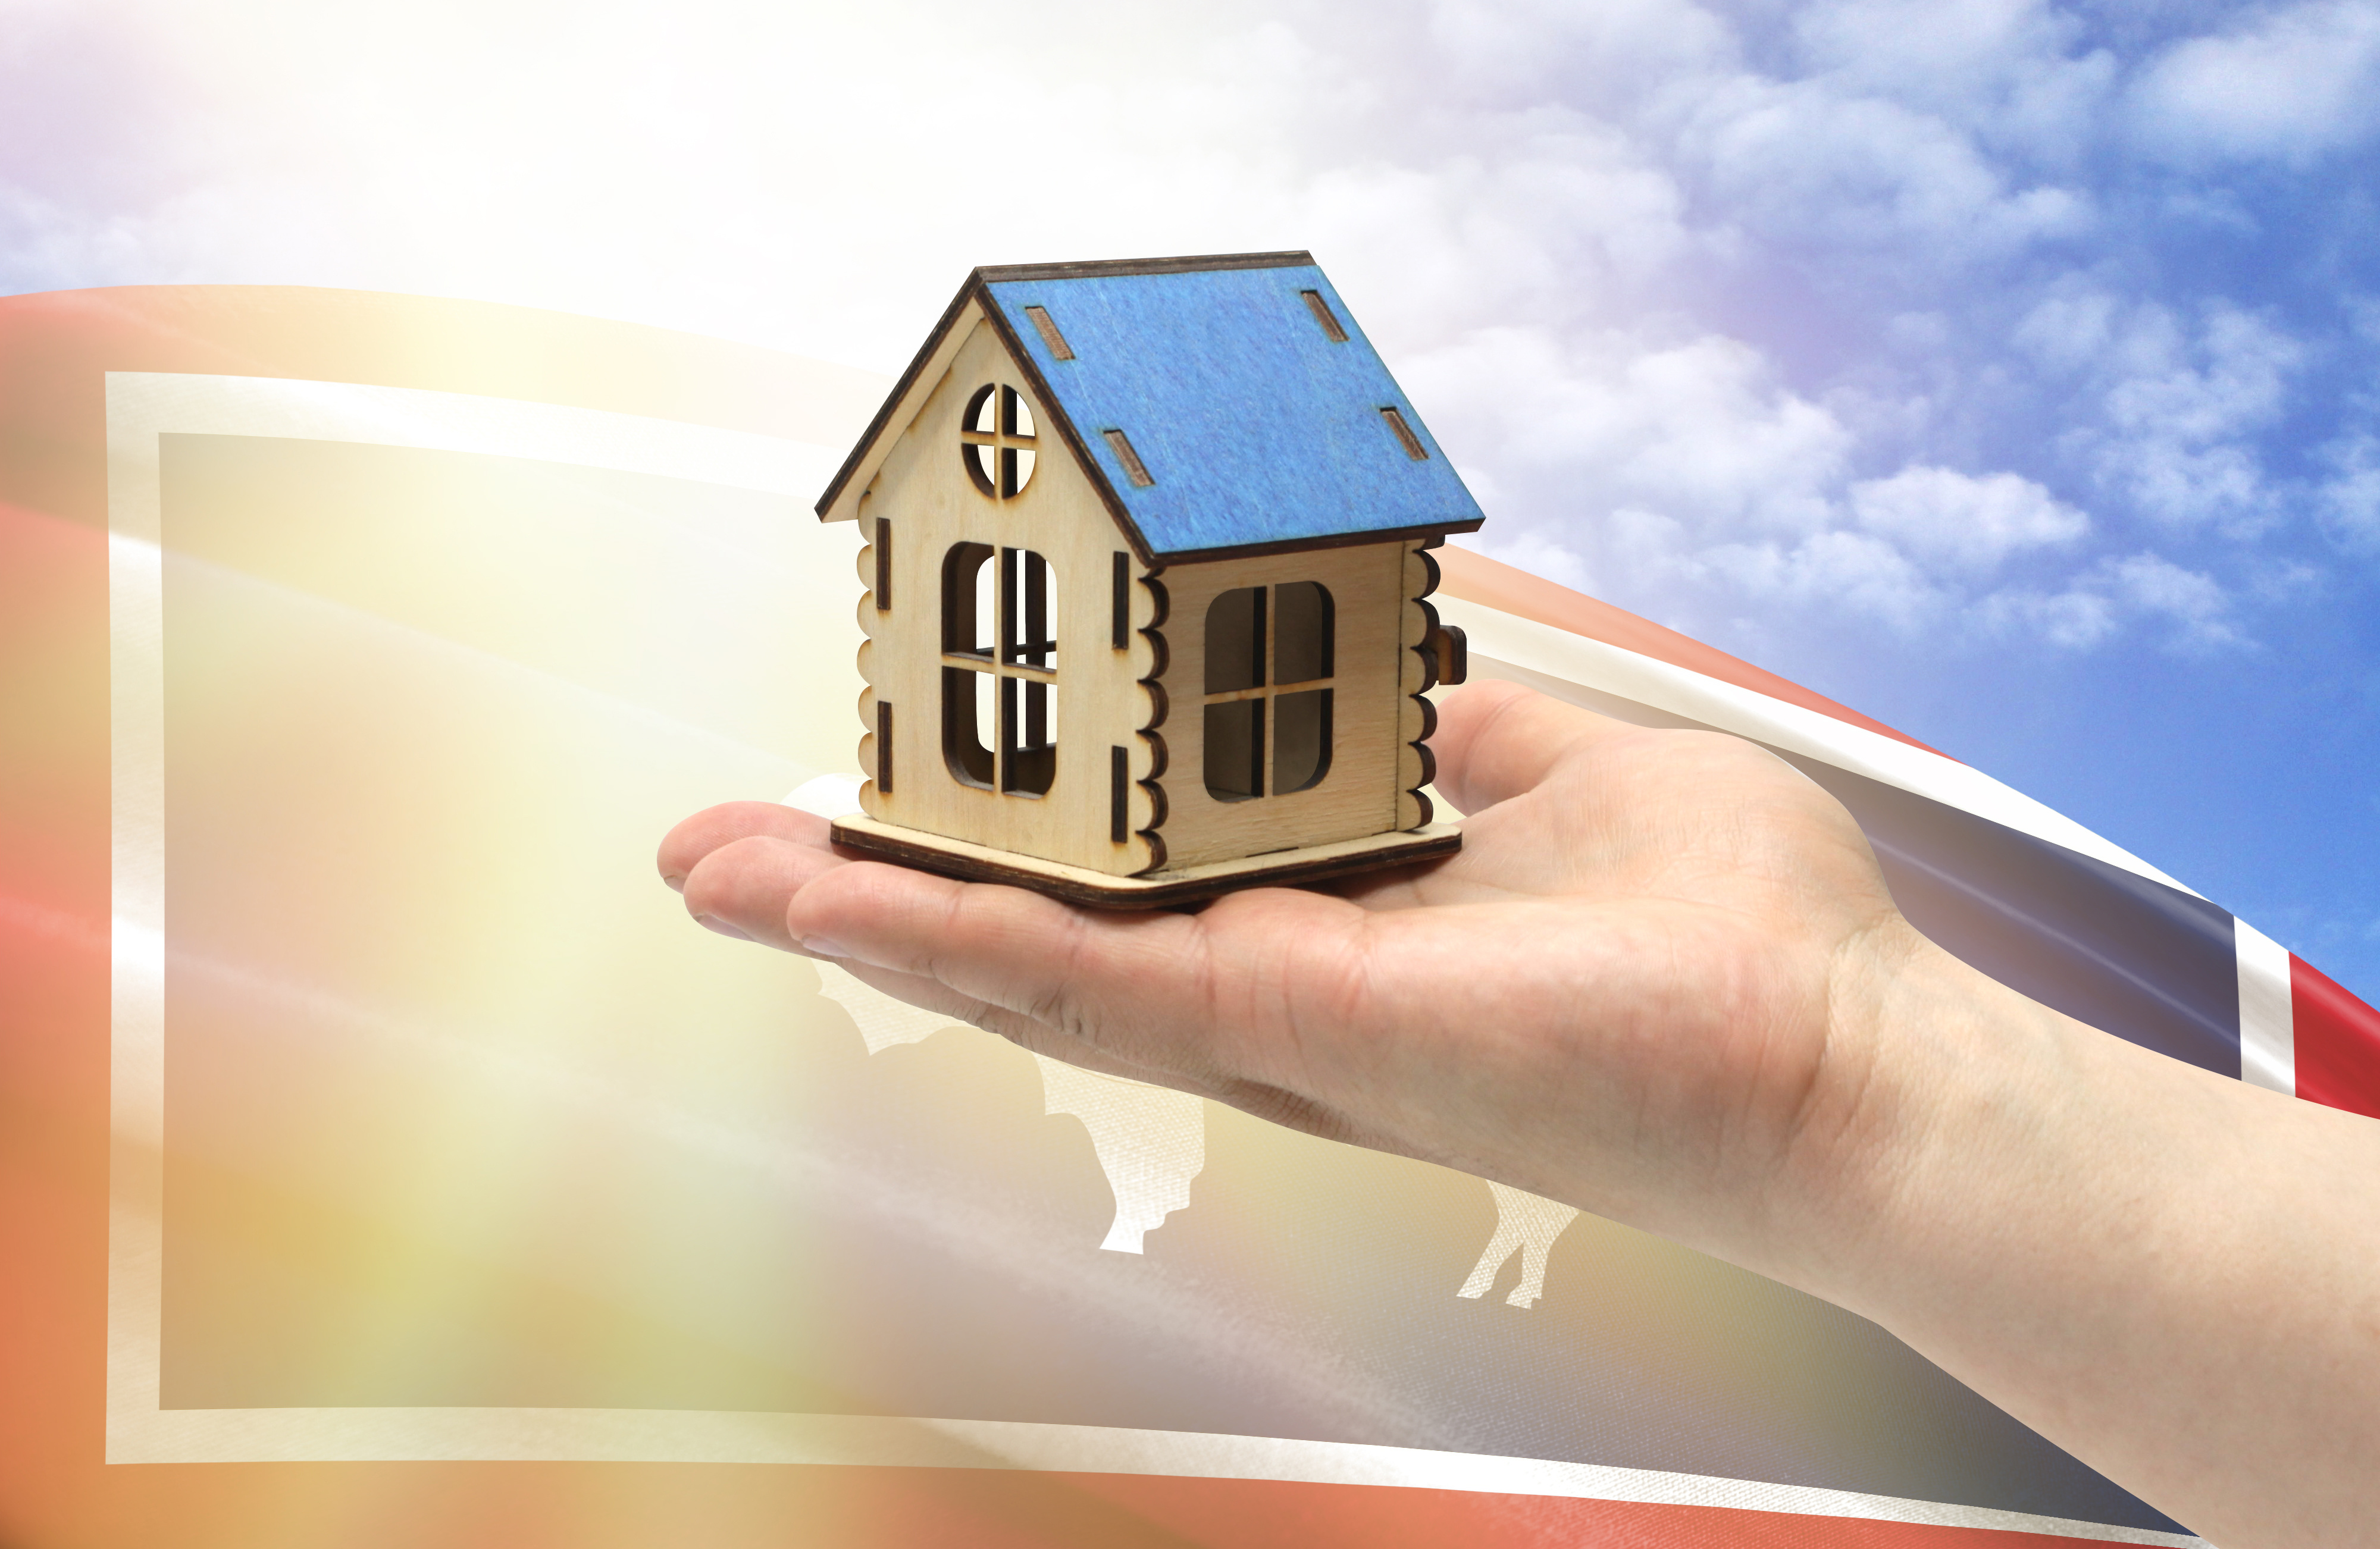 Do I need a home inspection in a hot market?